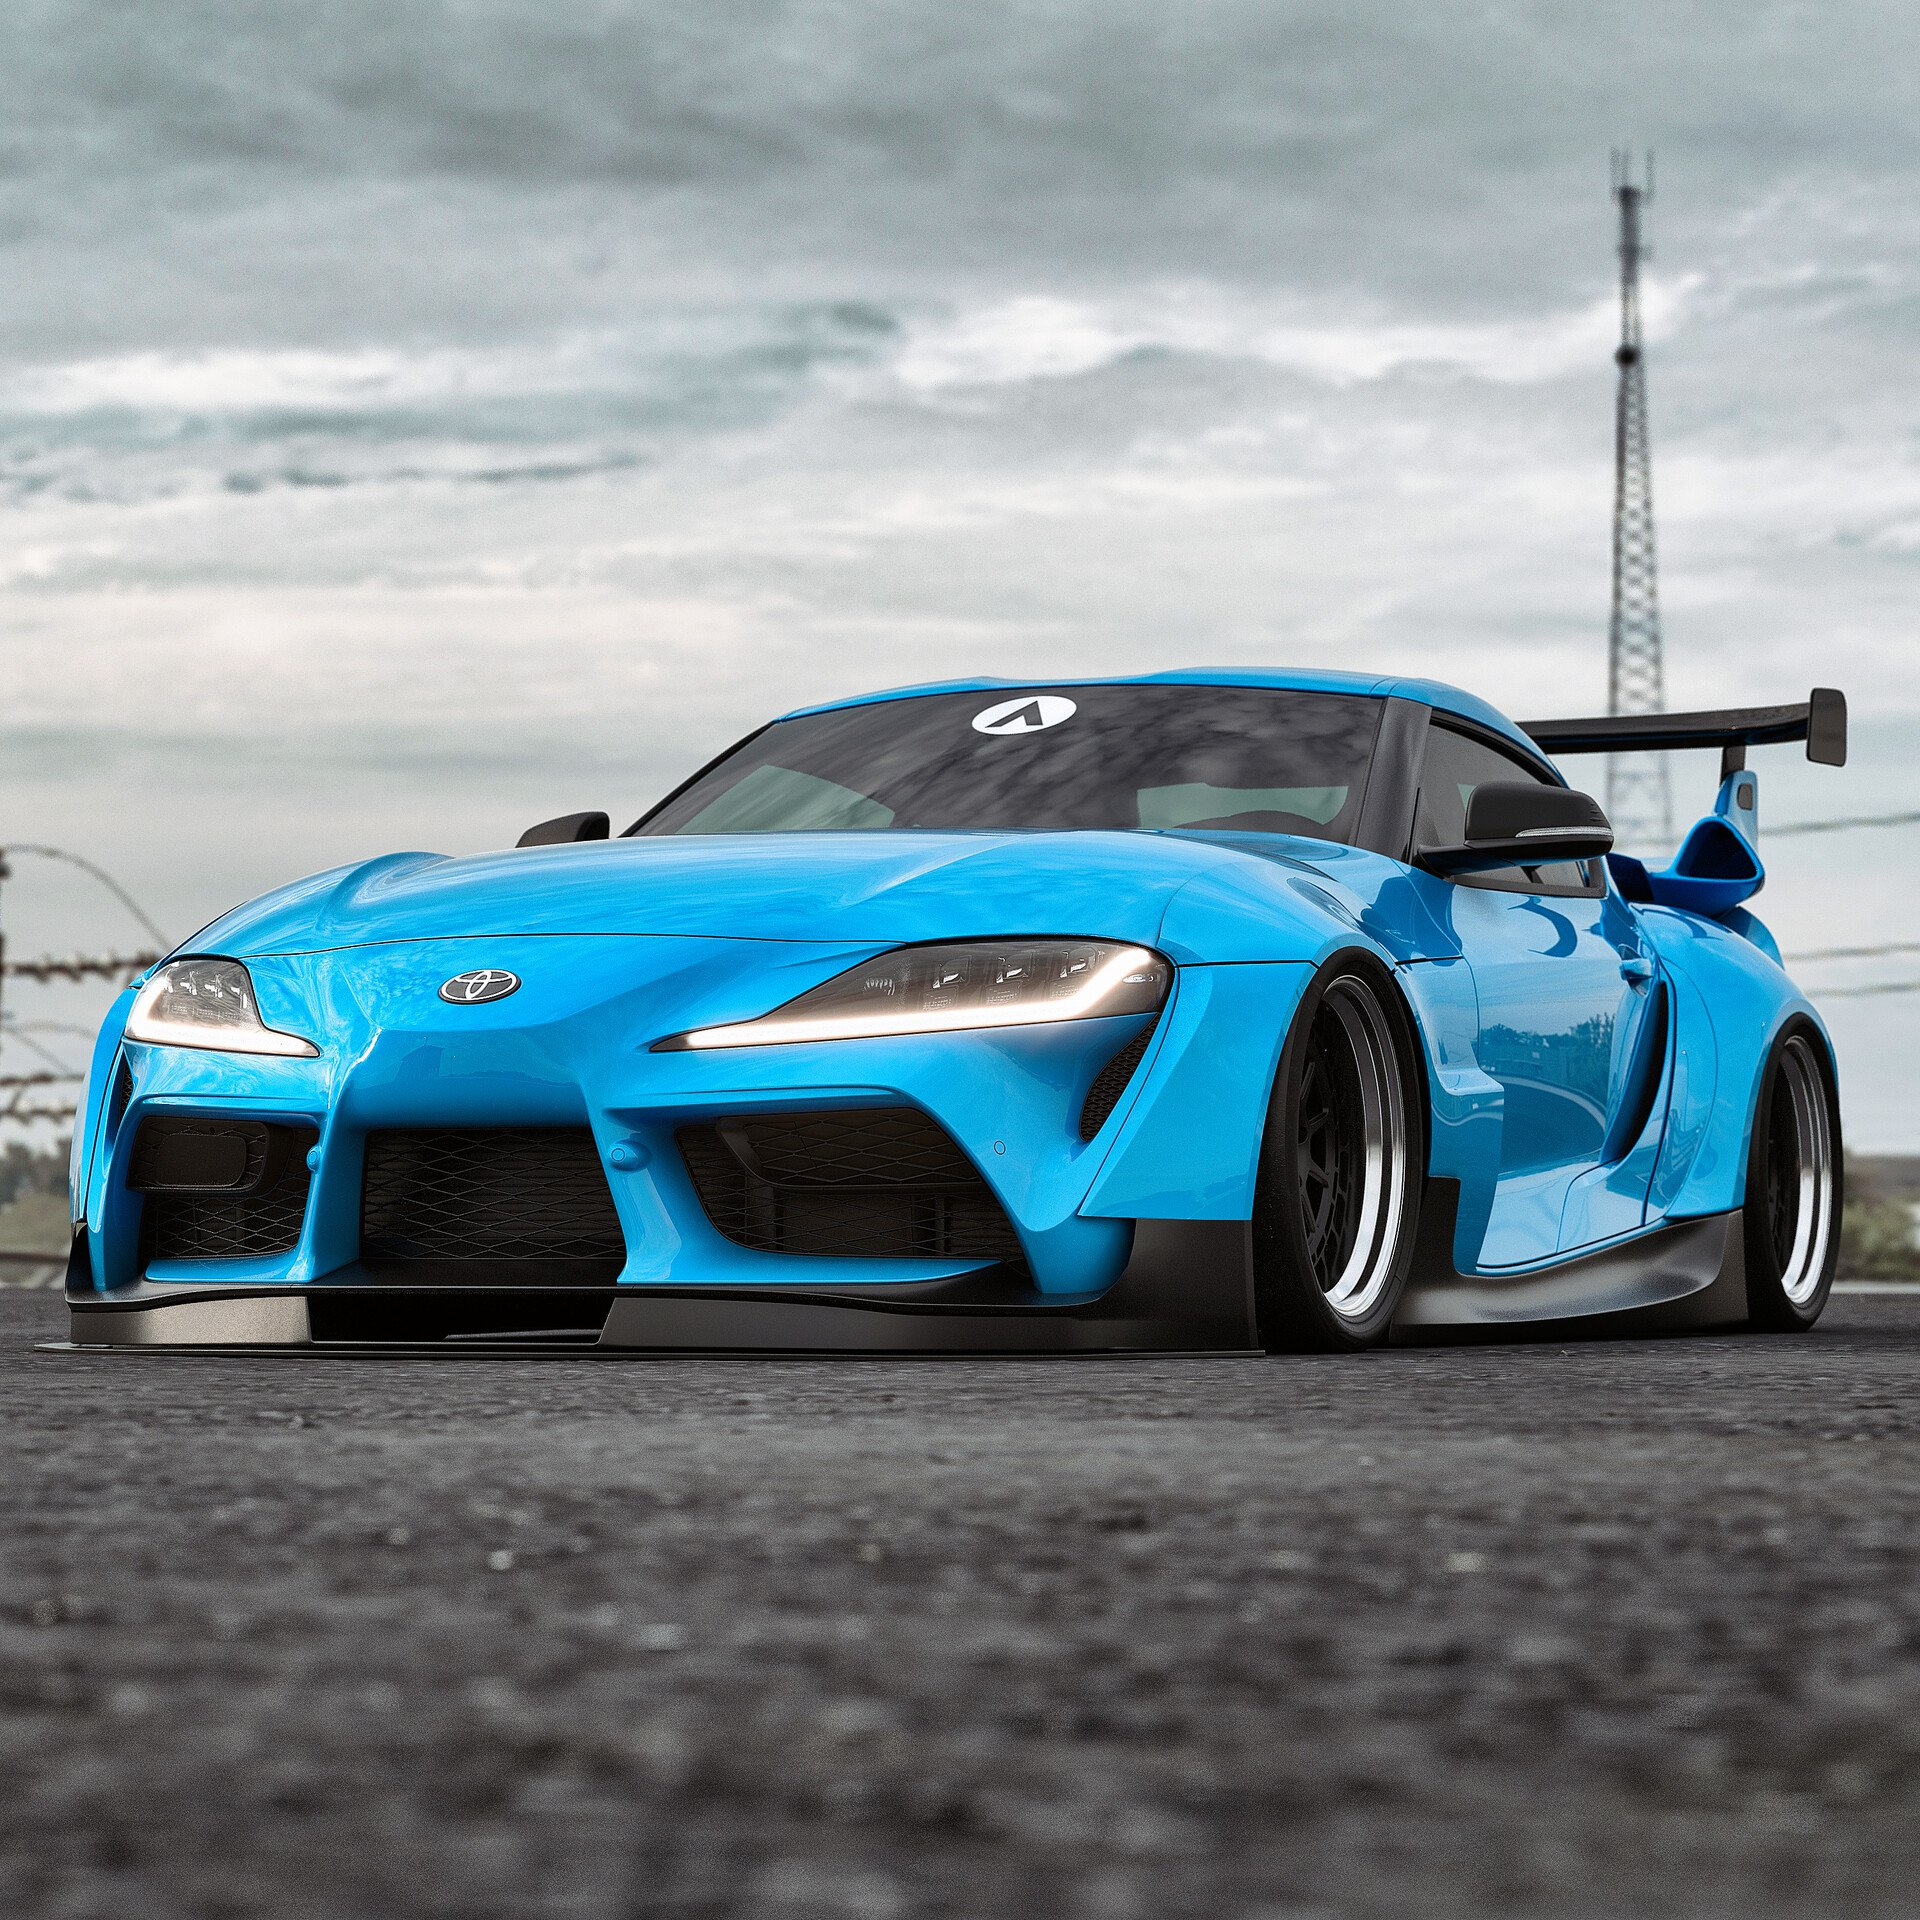 Toyota-Supra-Widebody-kit-renderings-1